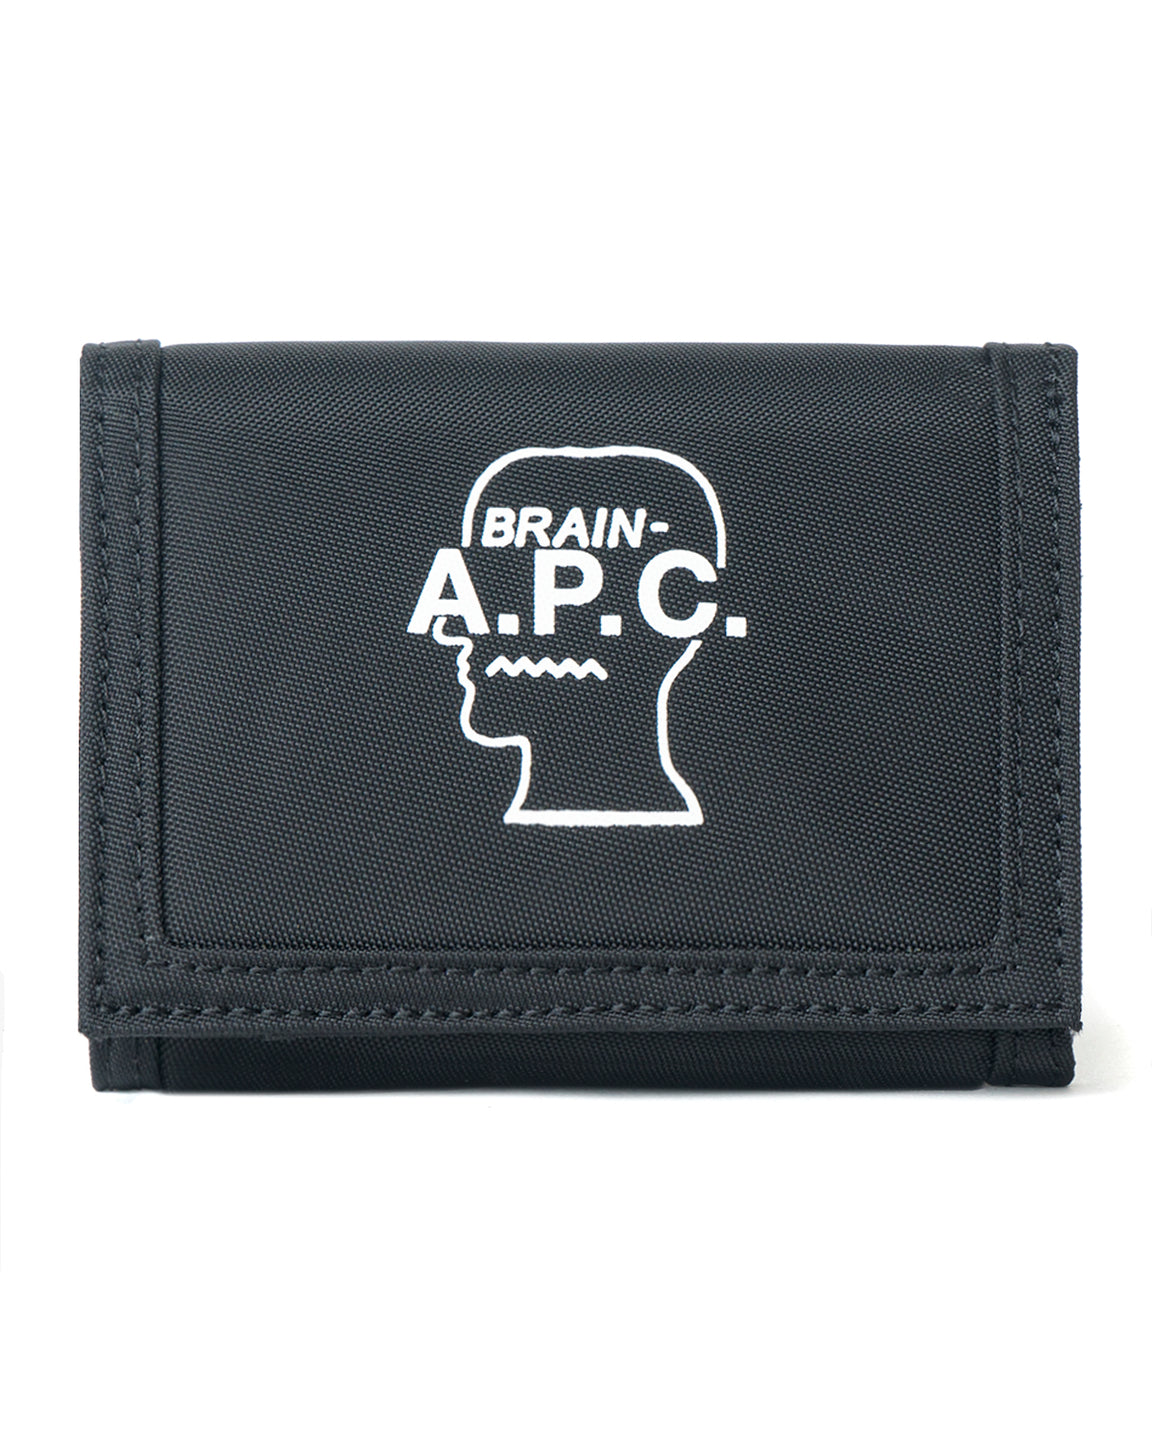 Technical Canvas Trifold Wallet A.P.C. x Brain Dead - Black